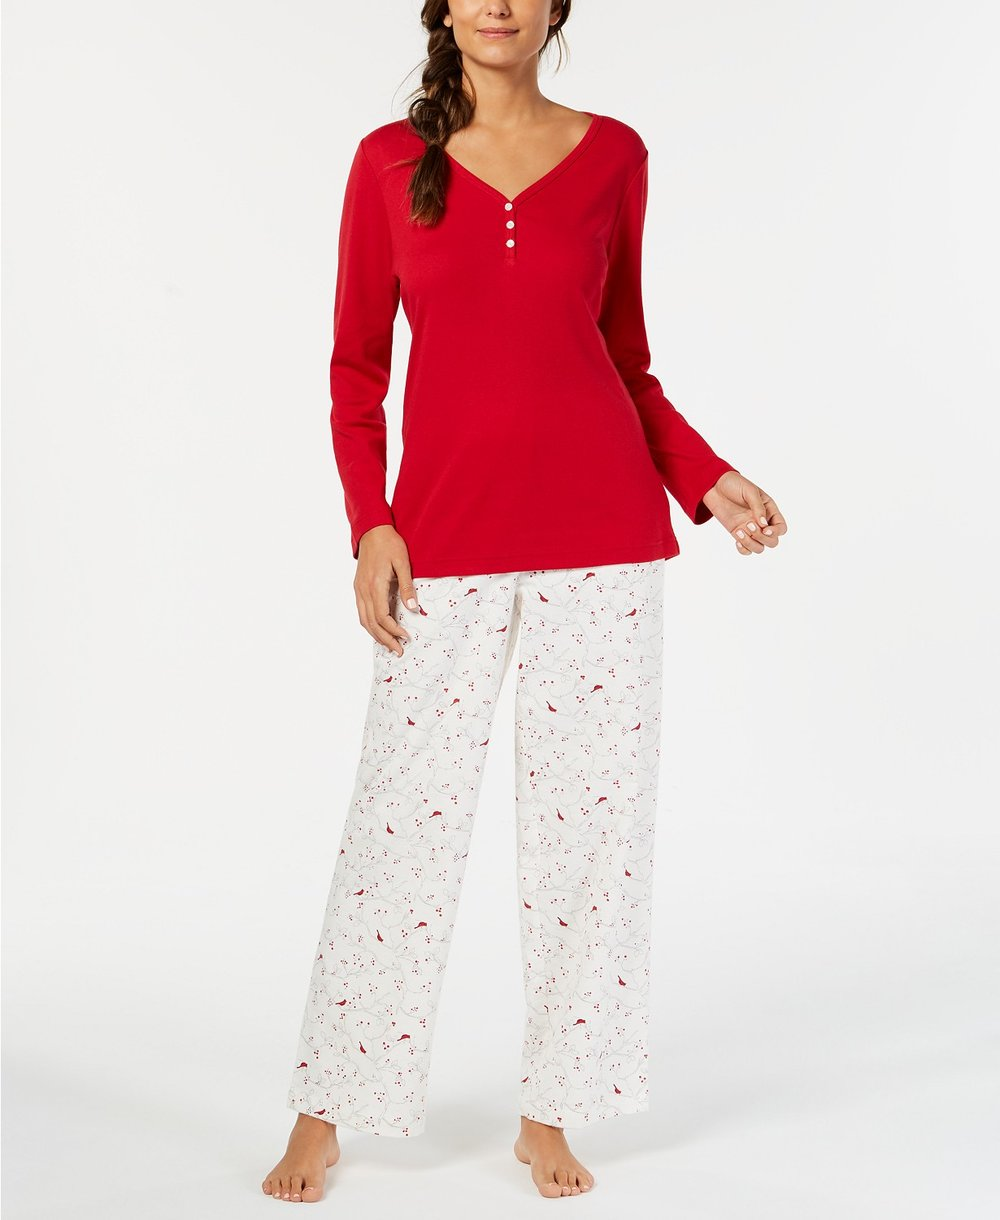 Macy's women's holiday pajamas